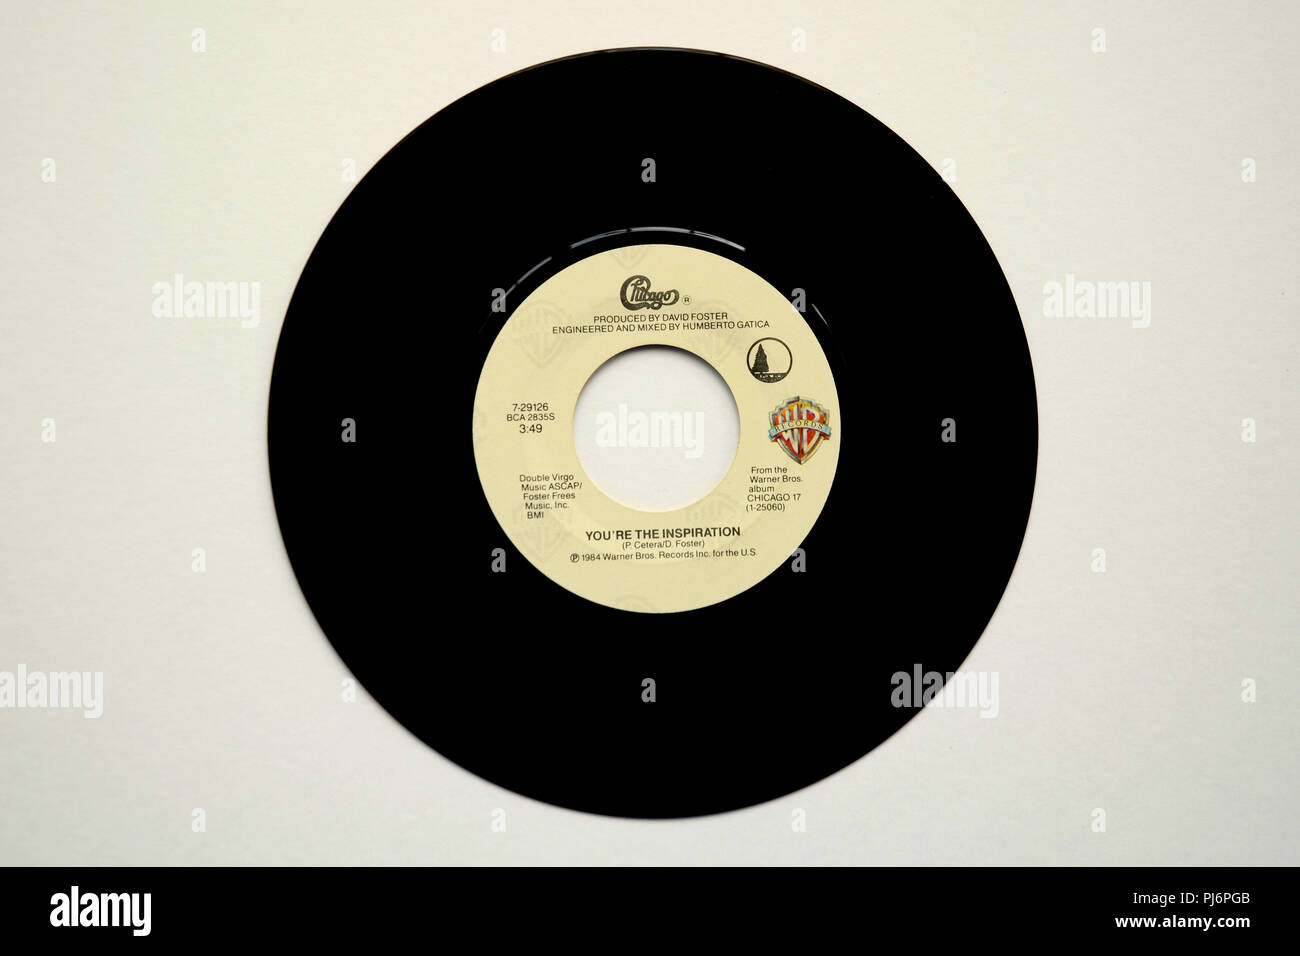 45 RPM vinyl record of Chicago's song 'You're the Inspiration' released in 1984 by Warner Brothers Records. - Stock Image